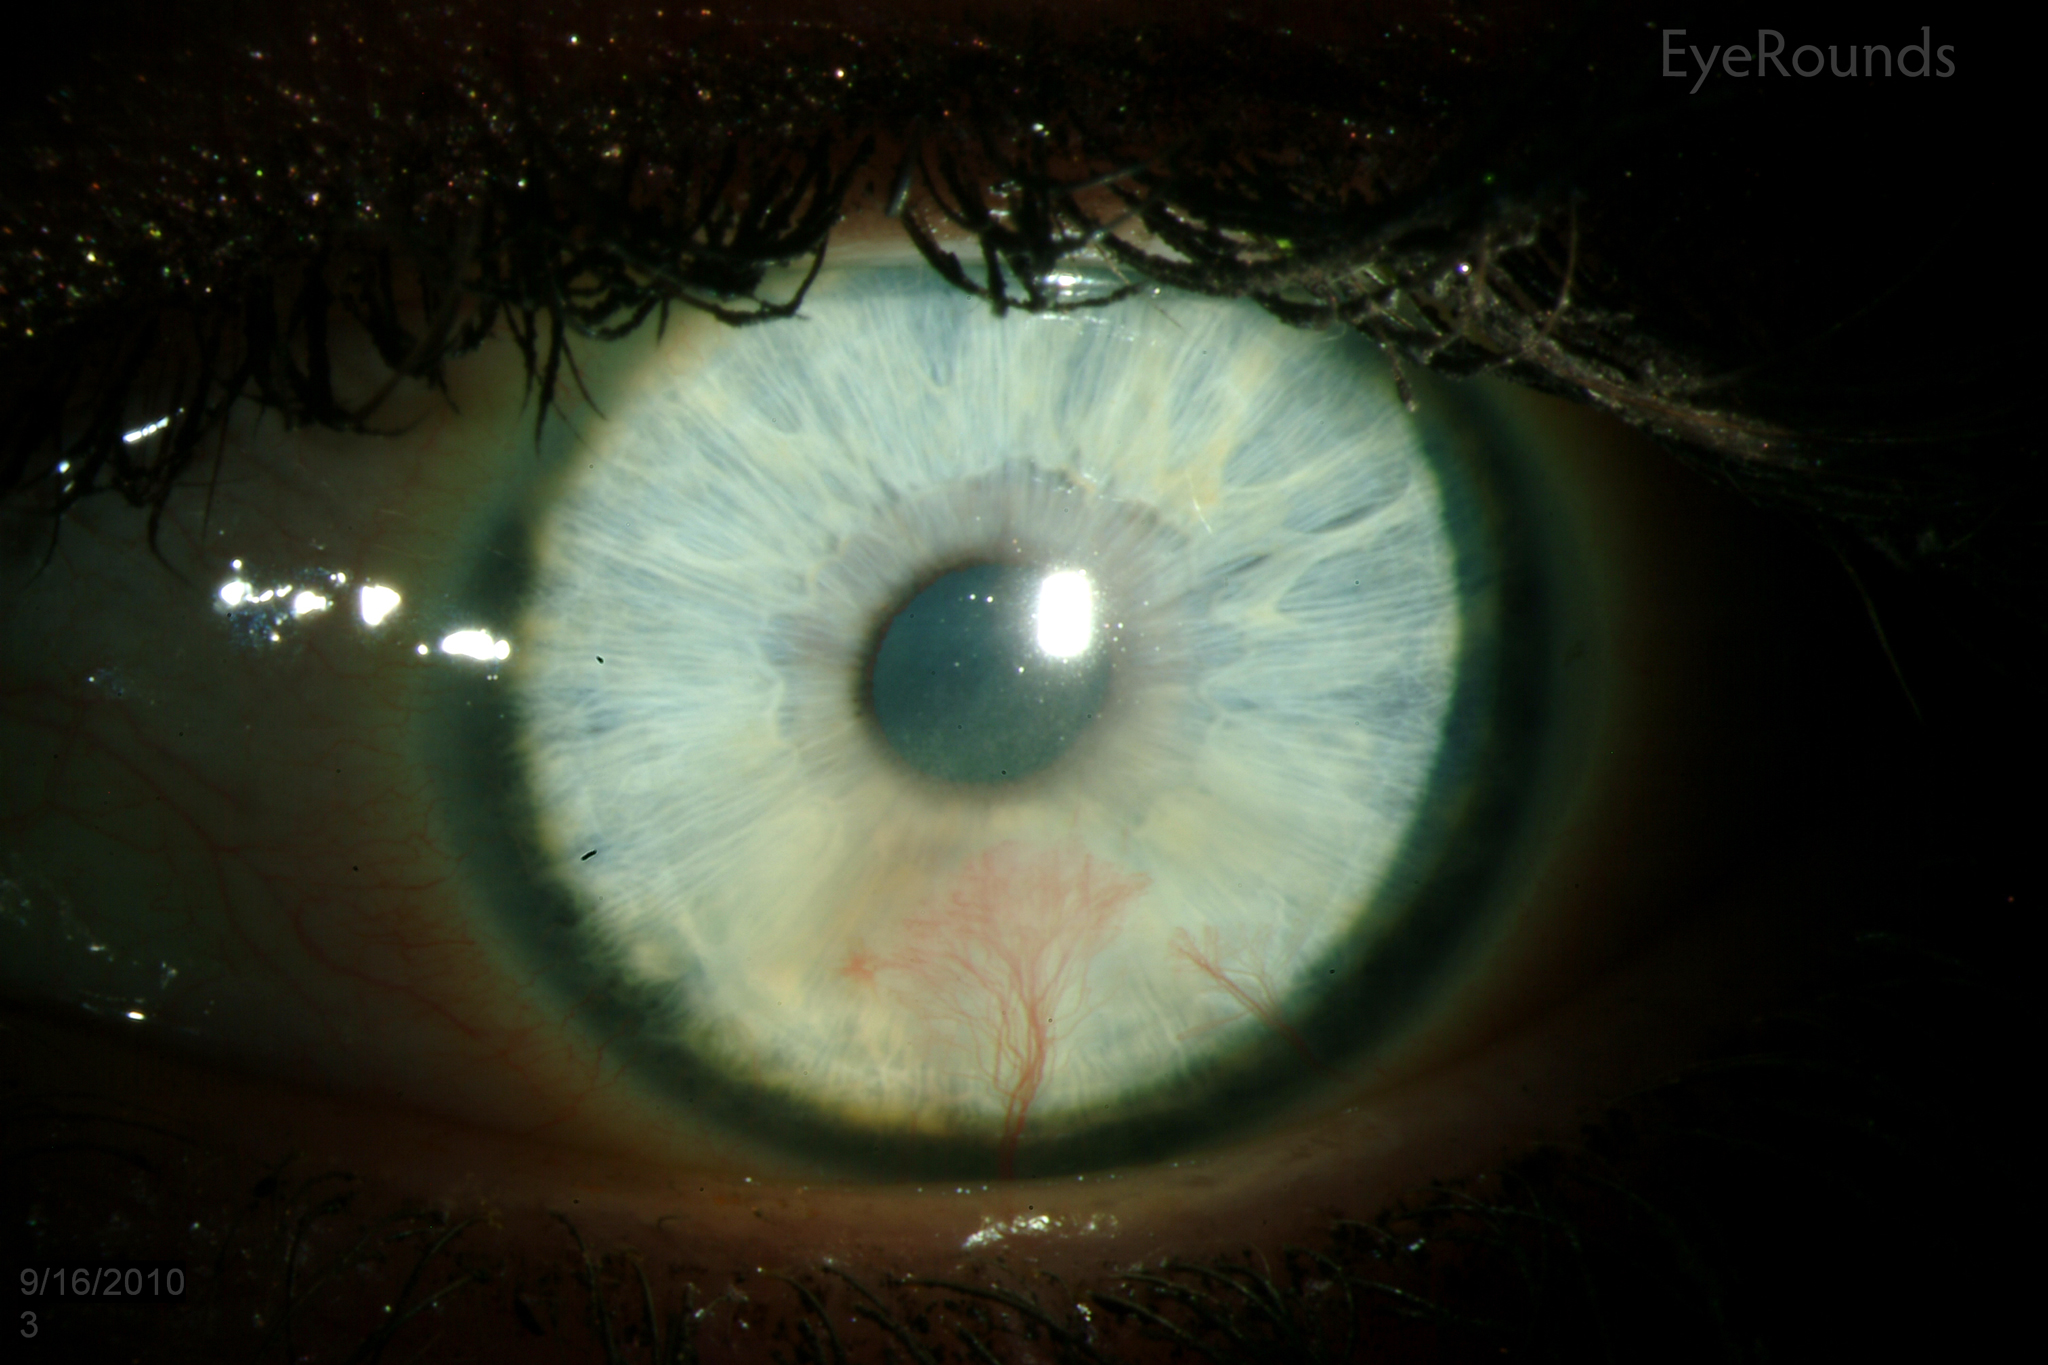 Herpetic keratitis: causes and treatment 96